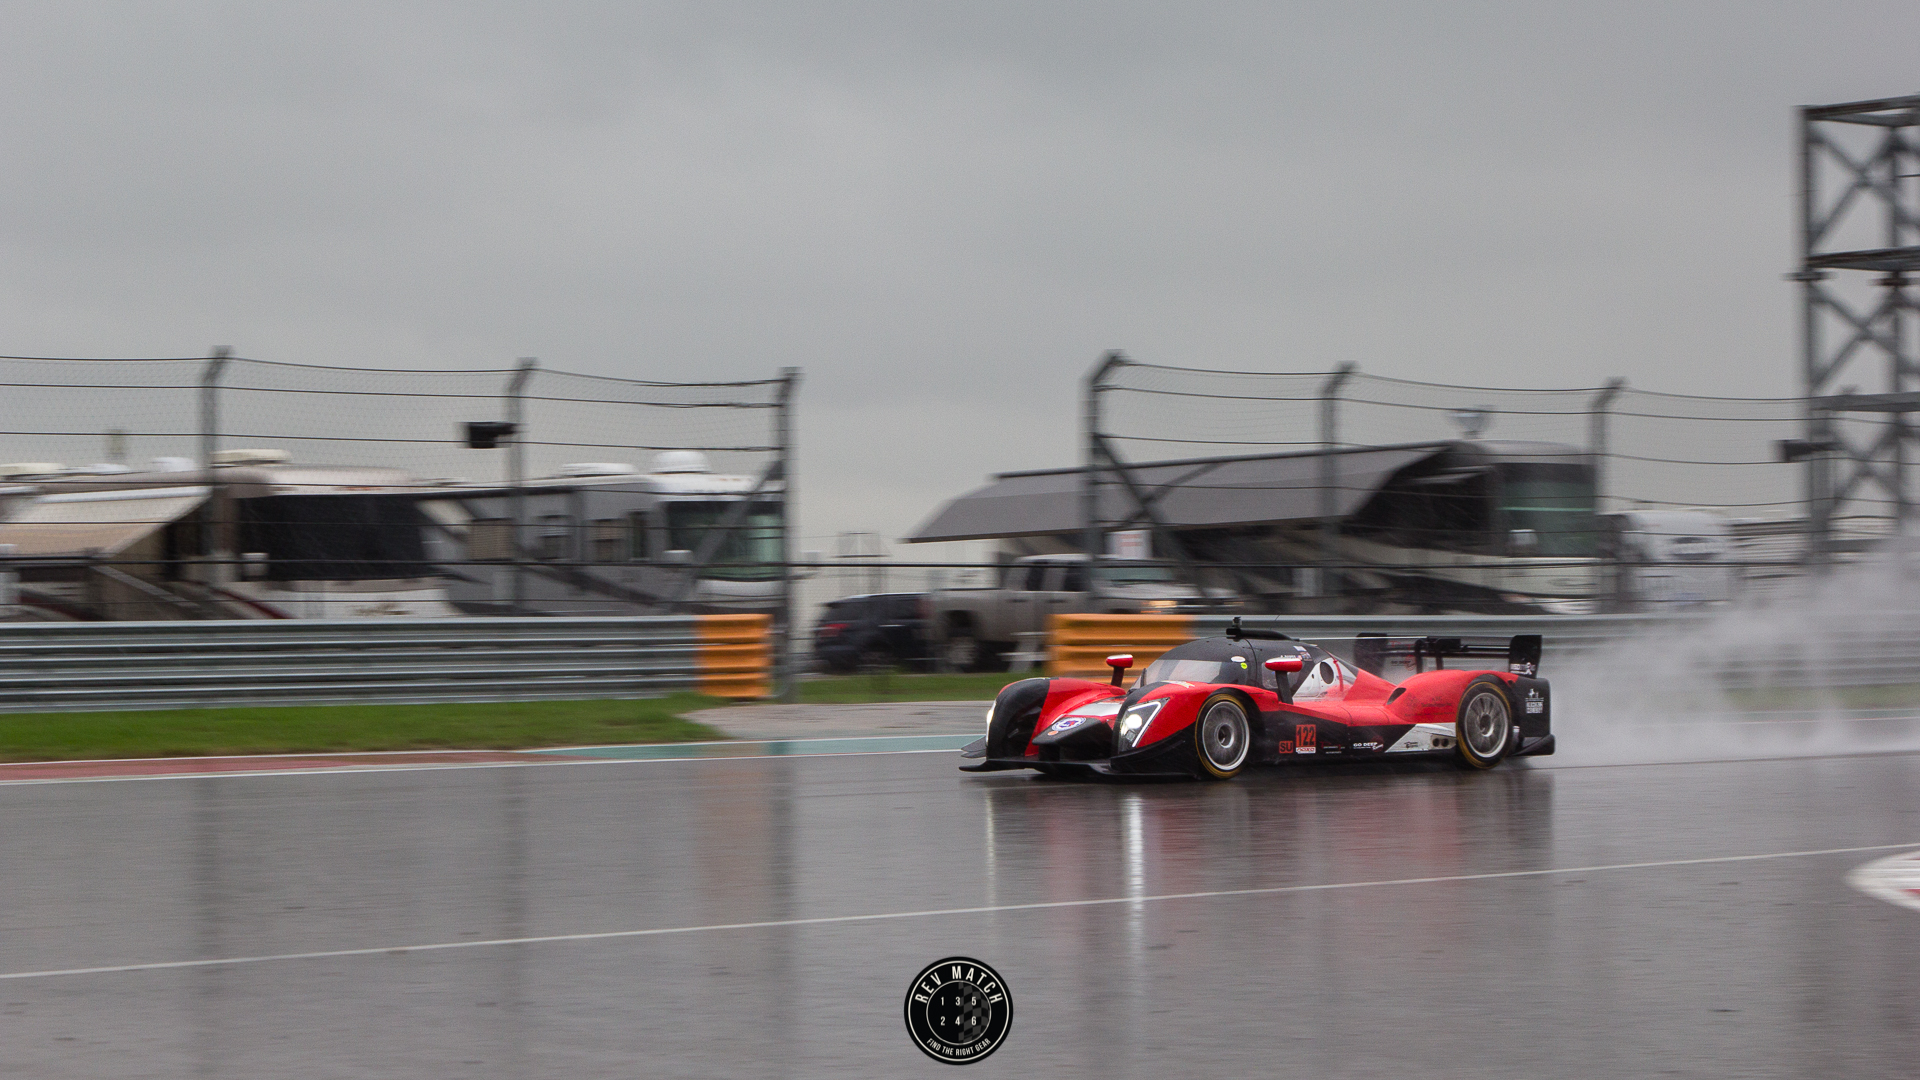 RMM x NASA at COTA 2018-183.jpg